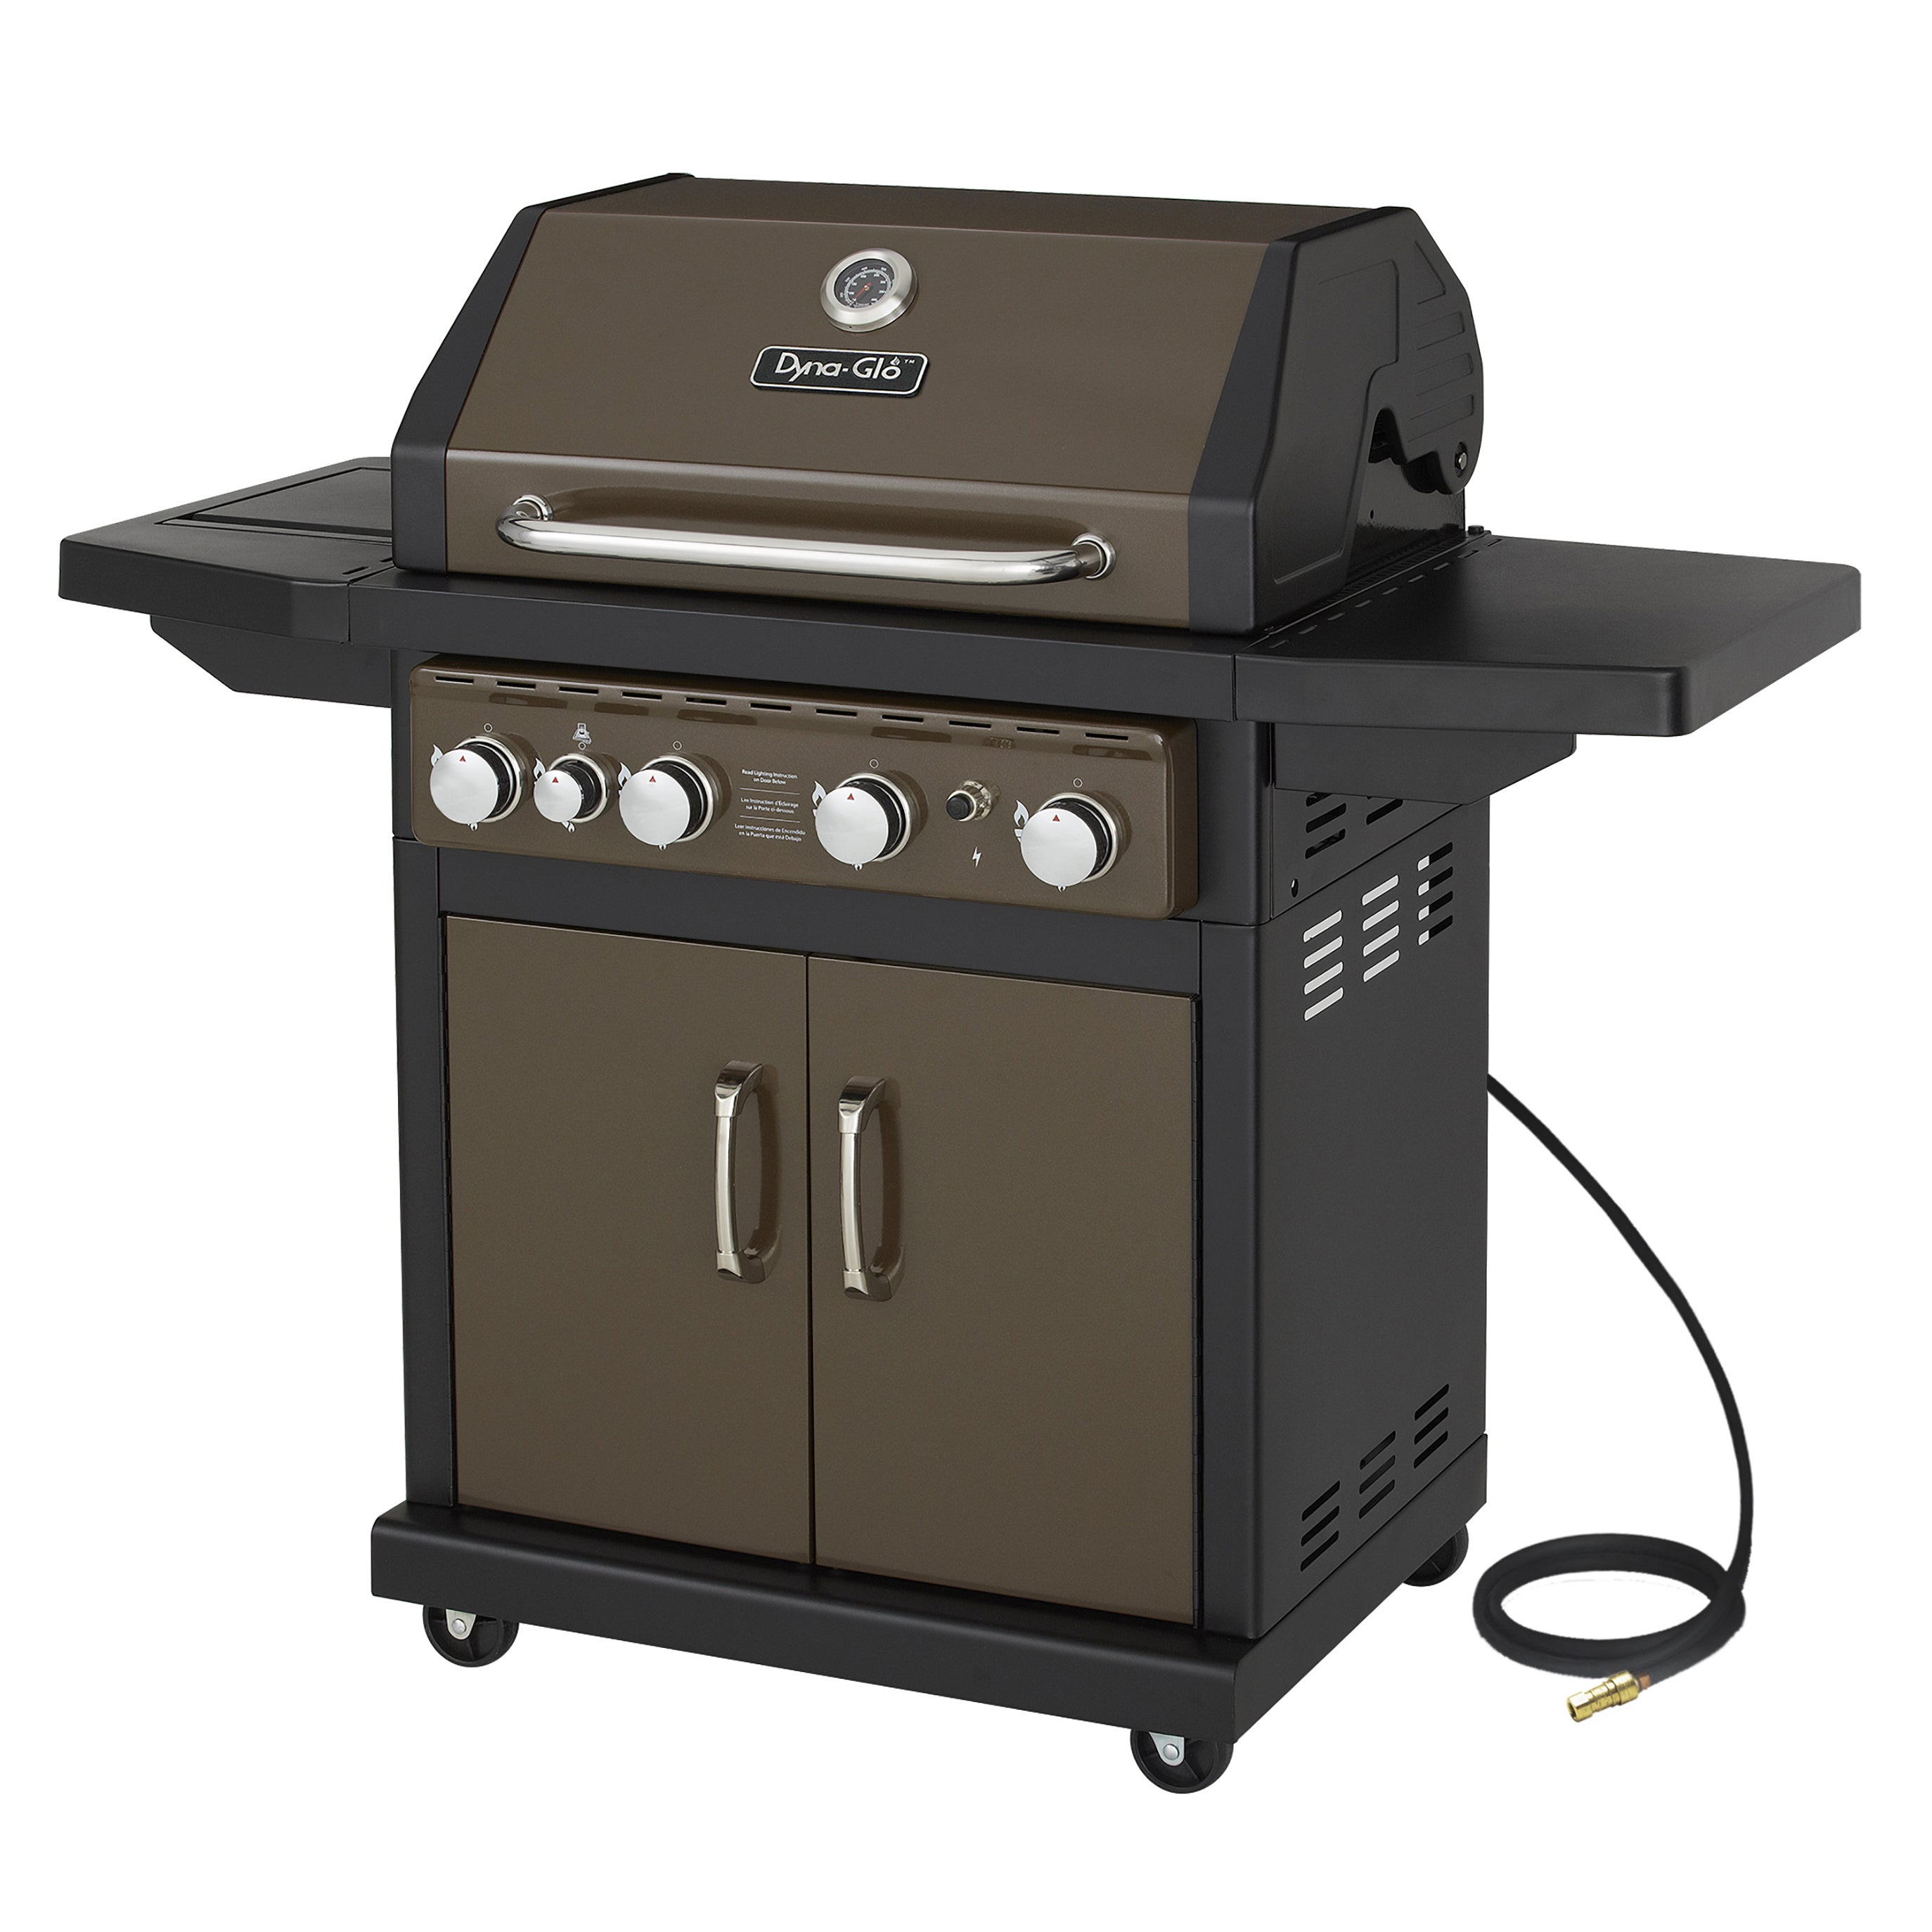 Dyna Glo DGA480BSN 4 Burner Bronze Natural Gas Grill (4 B...